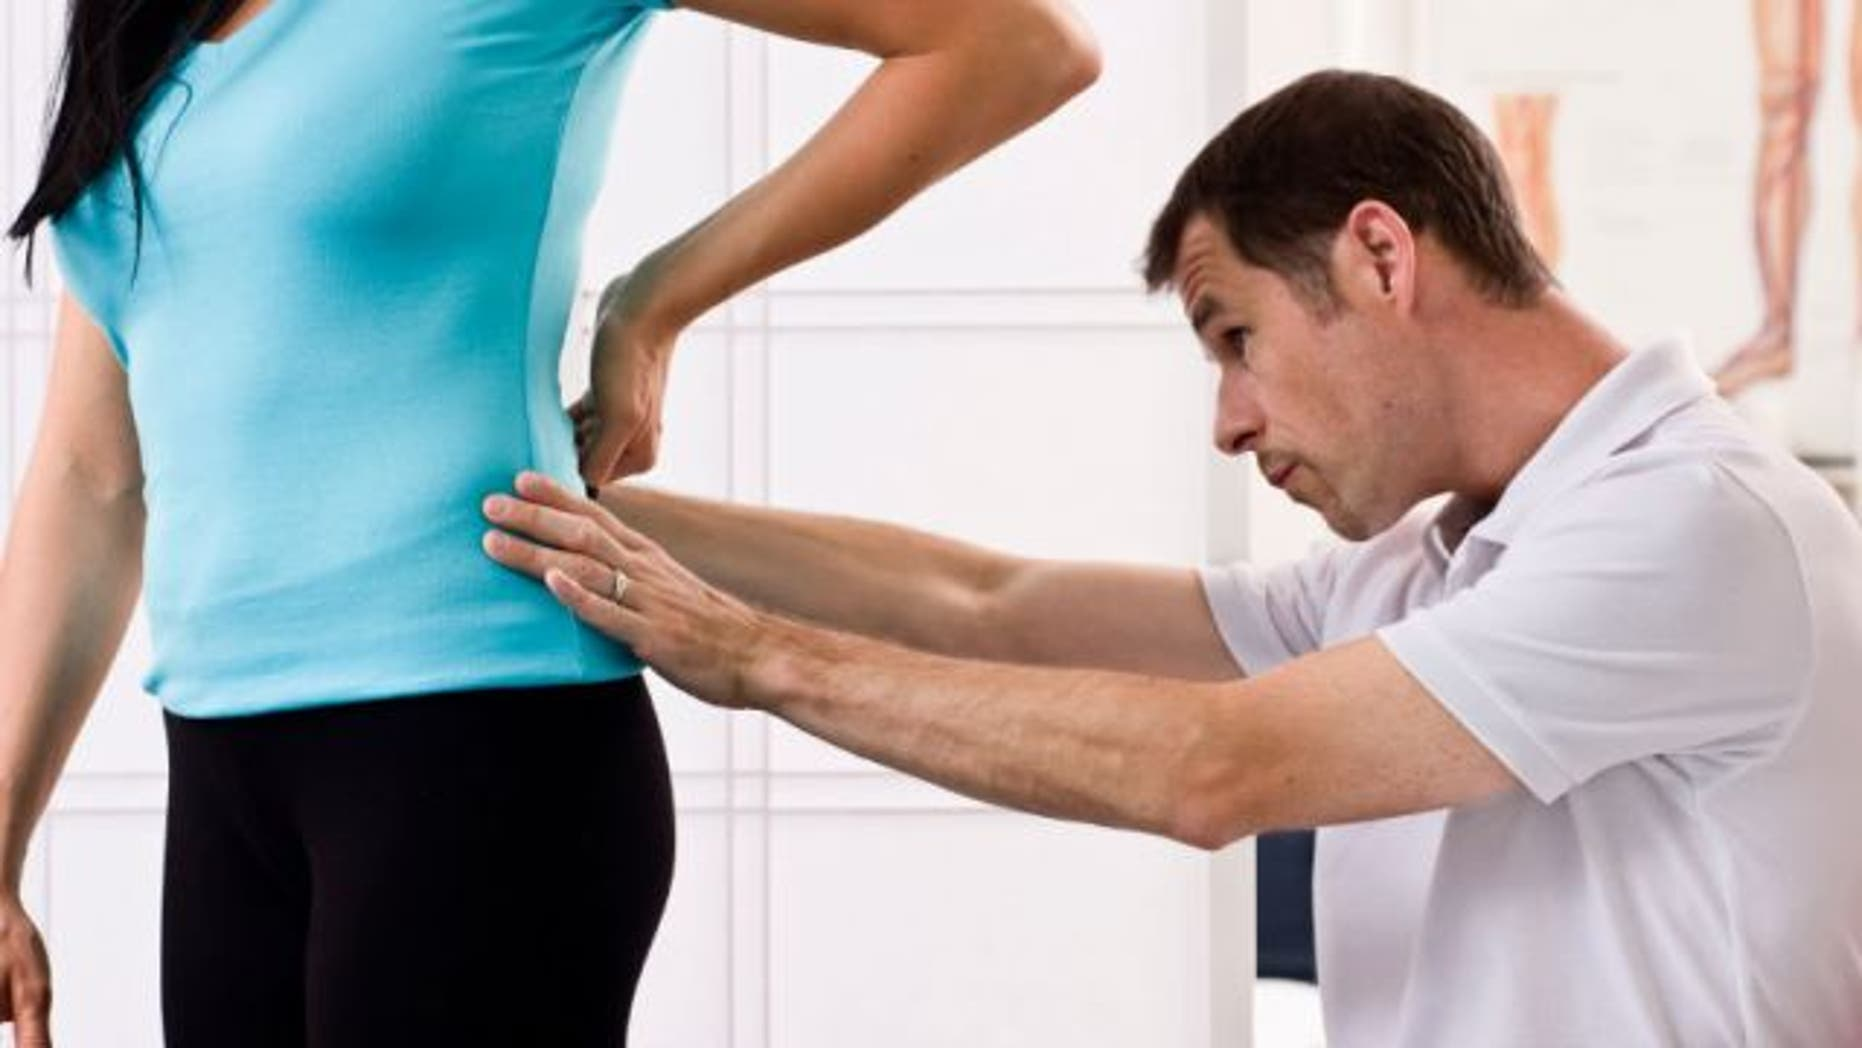 how chiropractors can make your back worse fox news